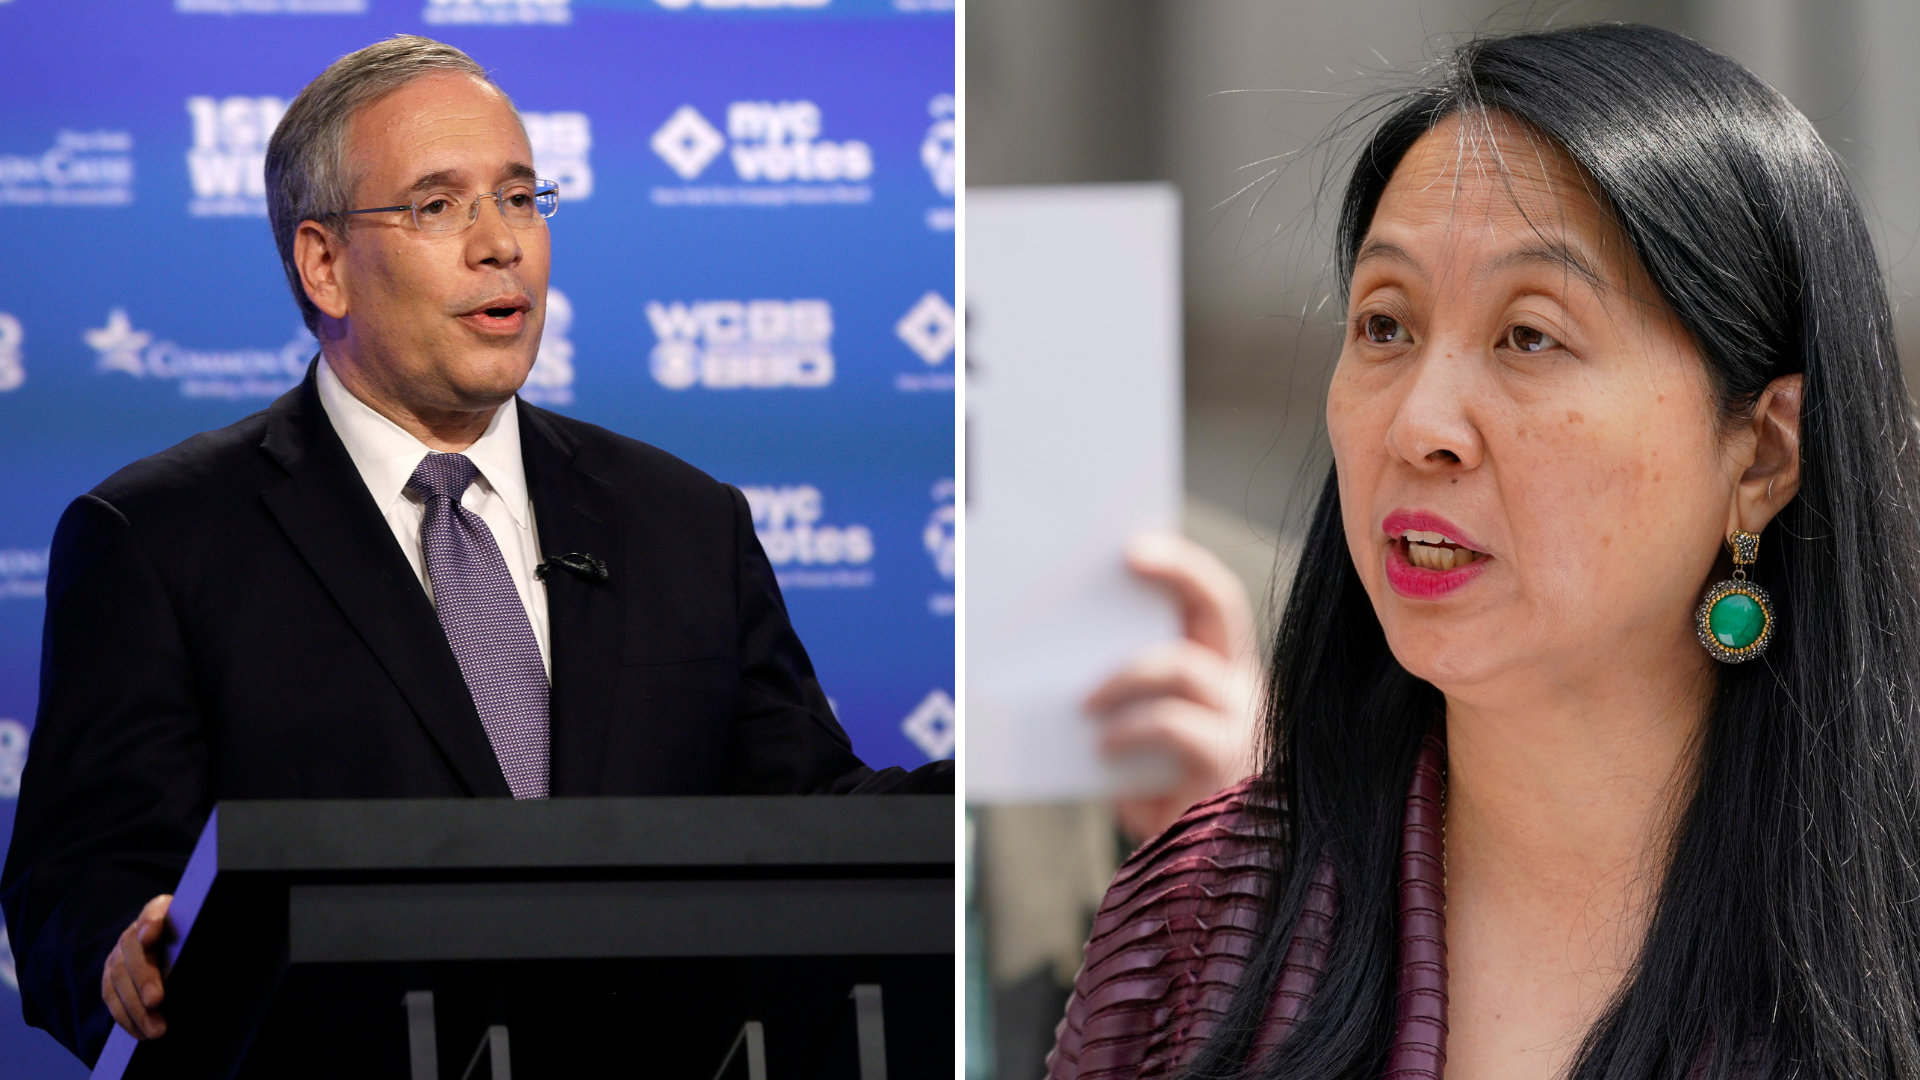 Scott Stringer, Jean Kim